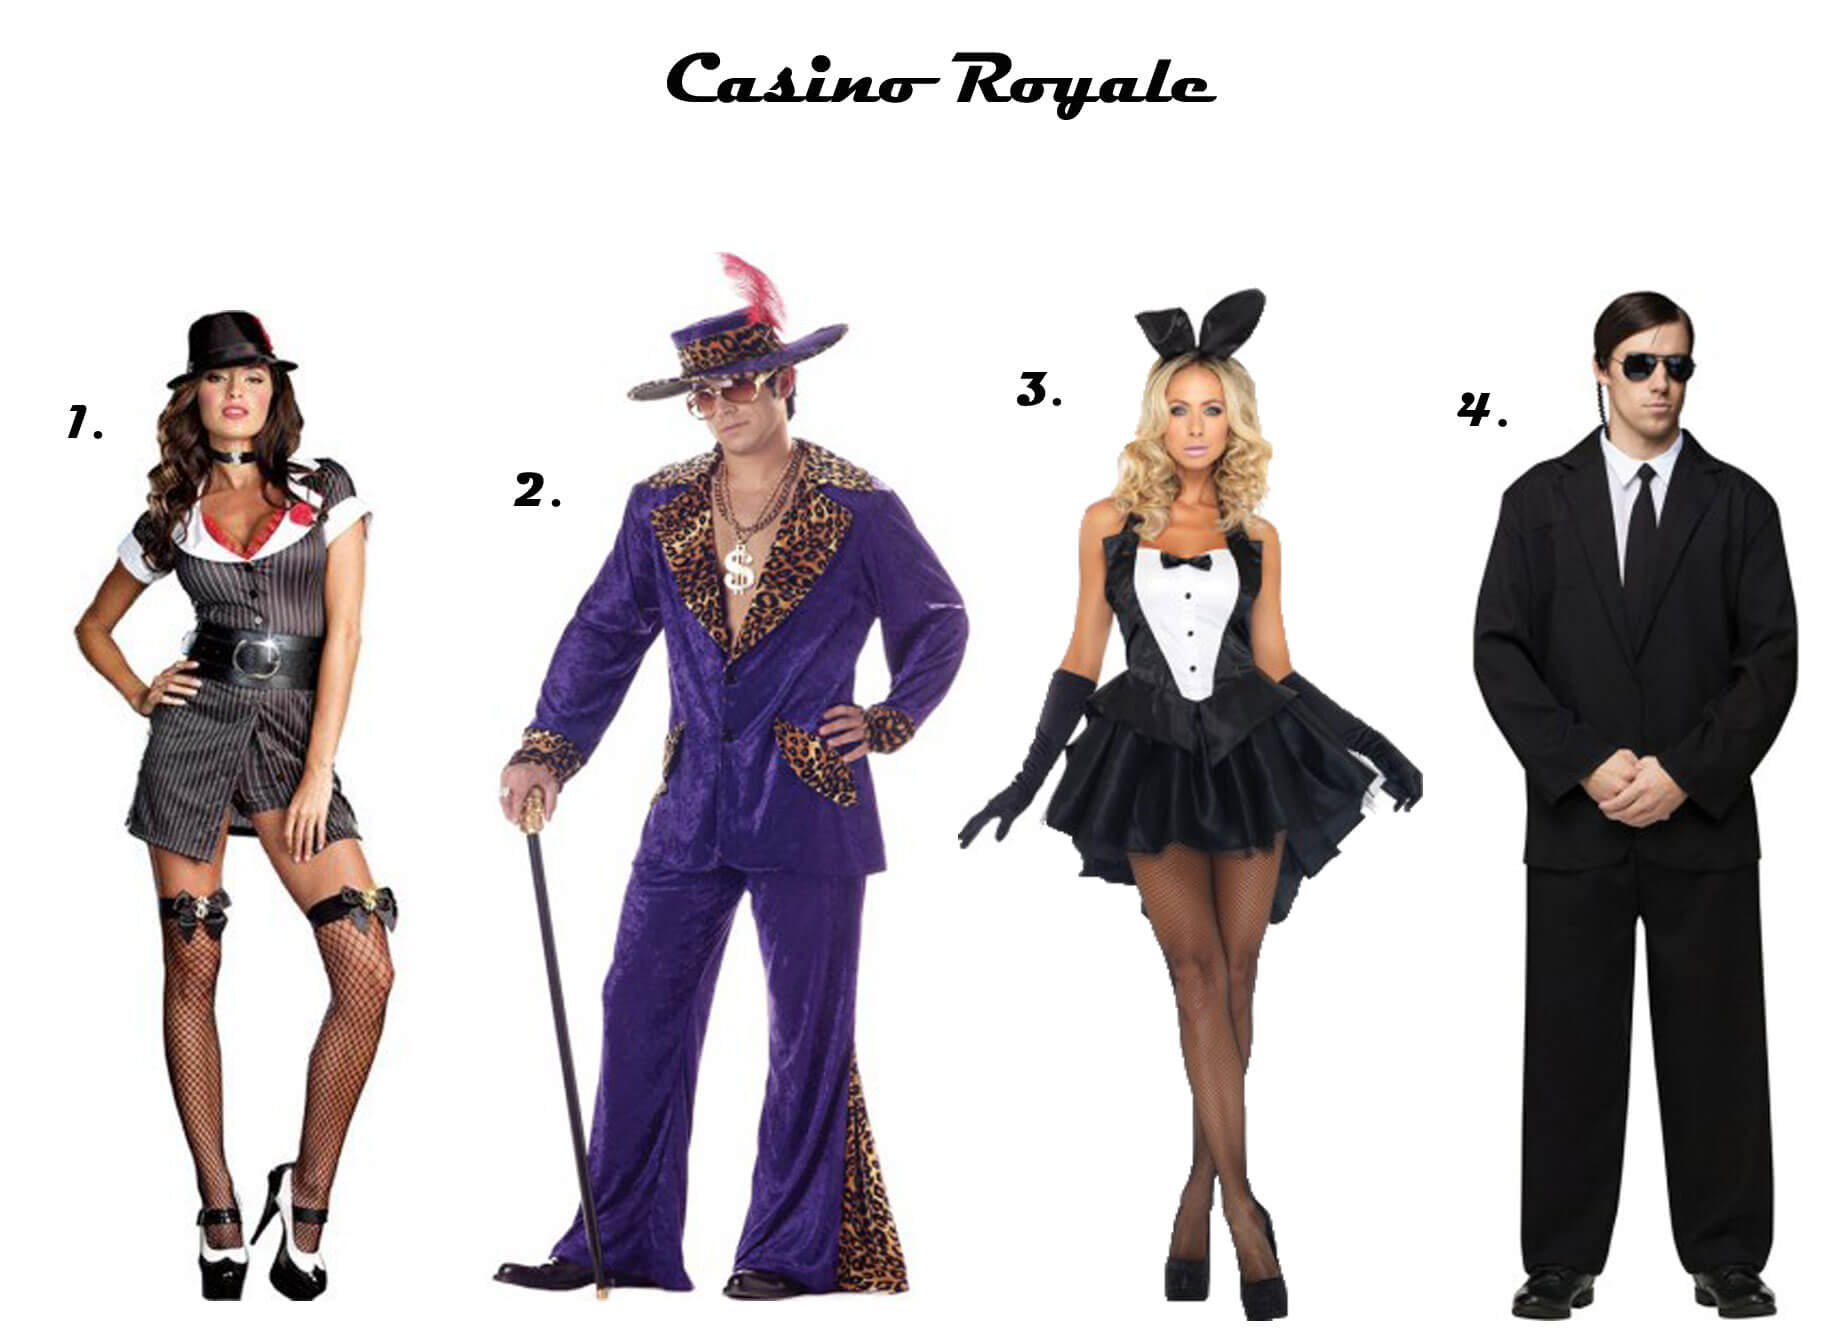 Outfit Ideas for Casino Parties - Themed Casino Party Dress Code Guide